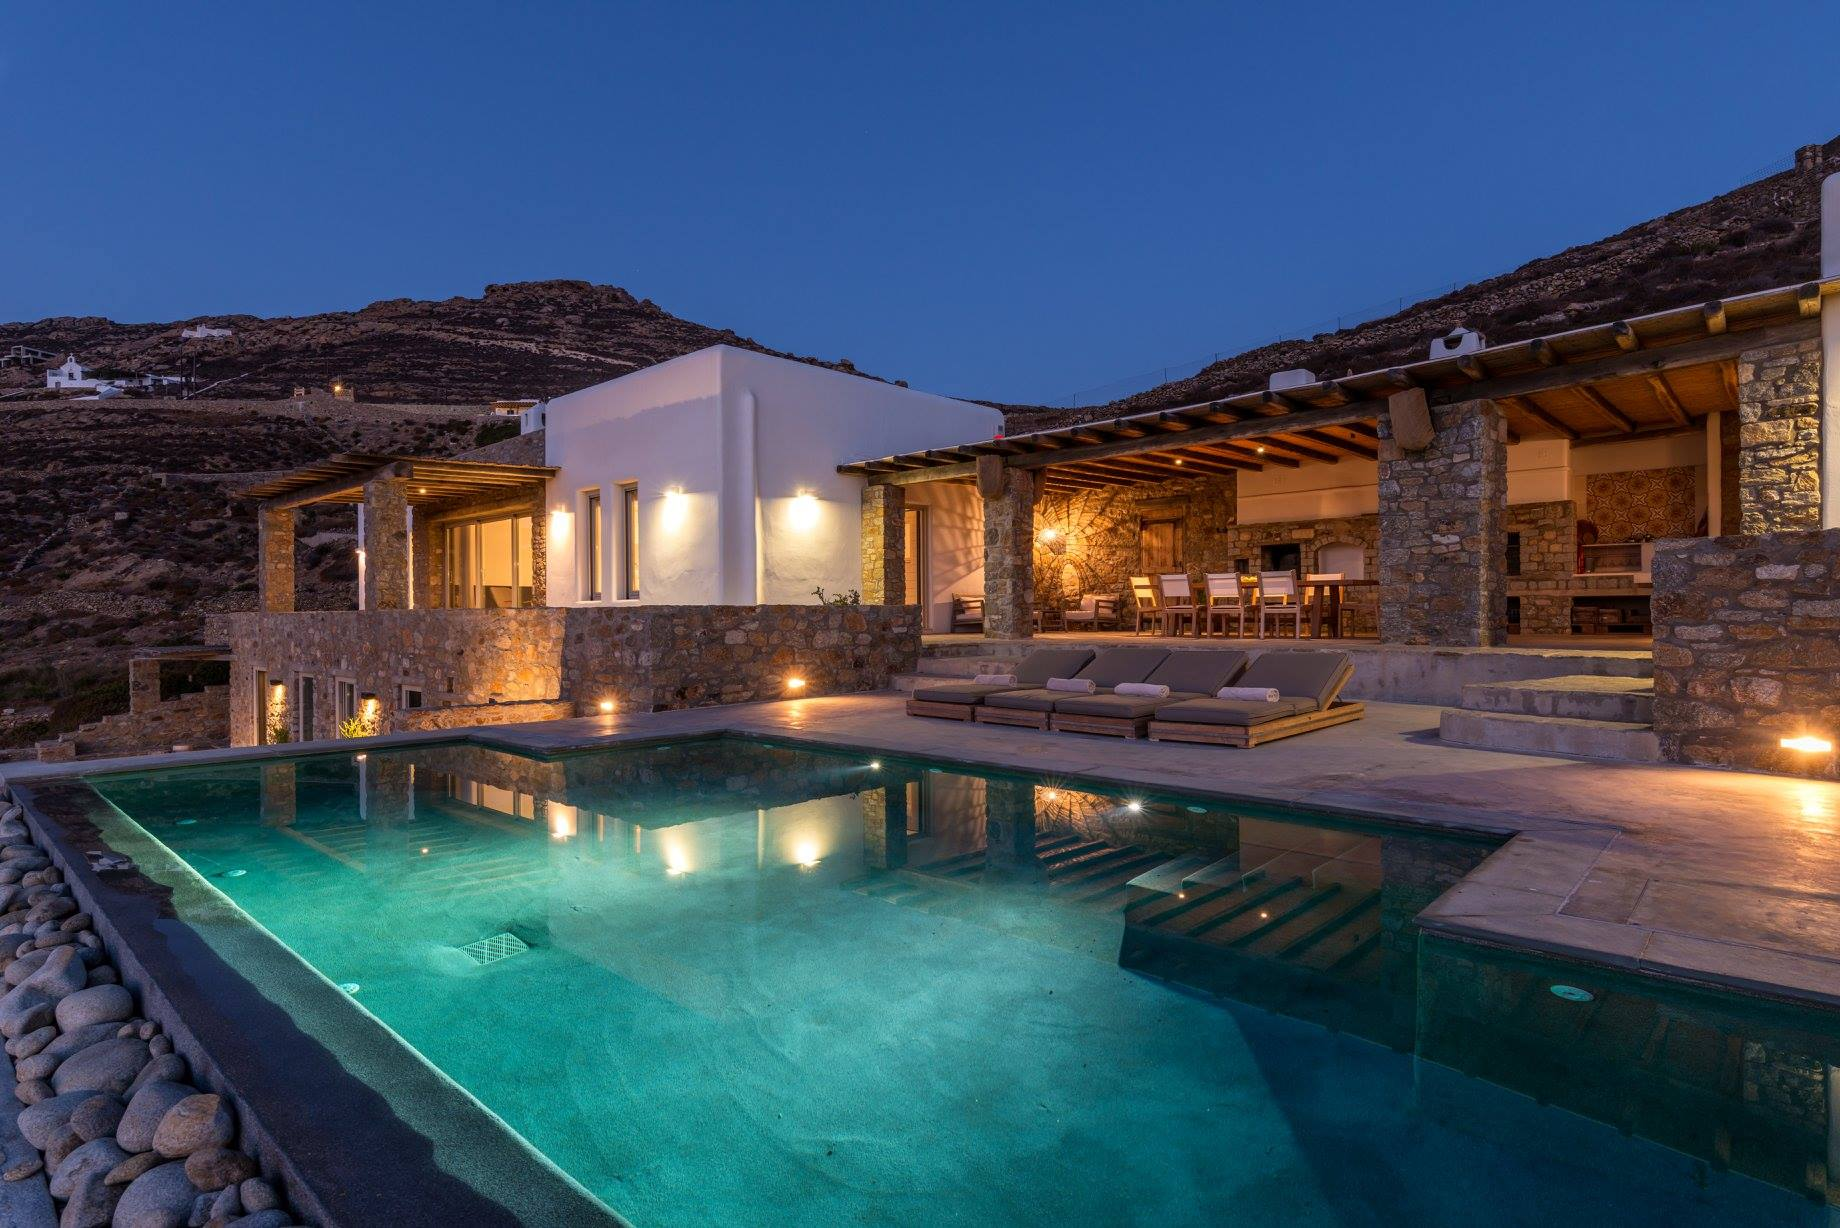 Property Image 1 - Stunning villa with spectacular sunset views and dazzling pool